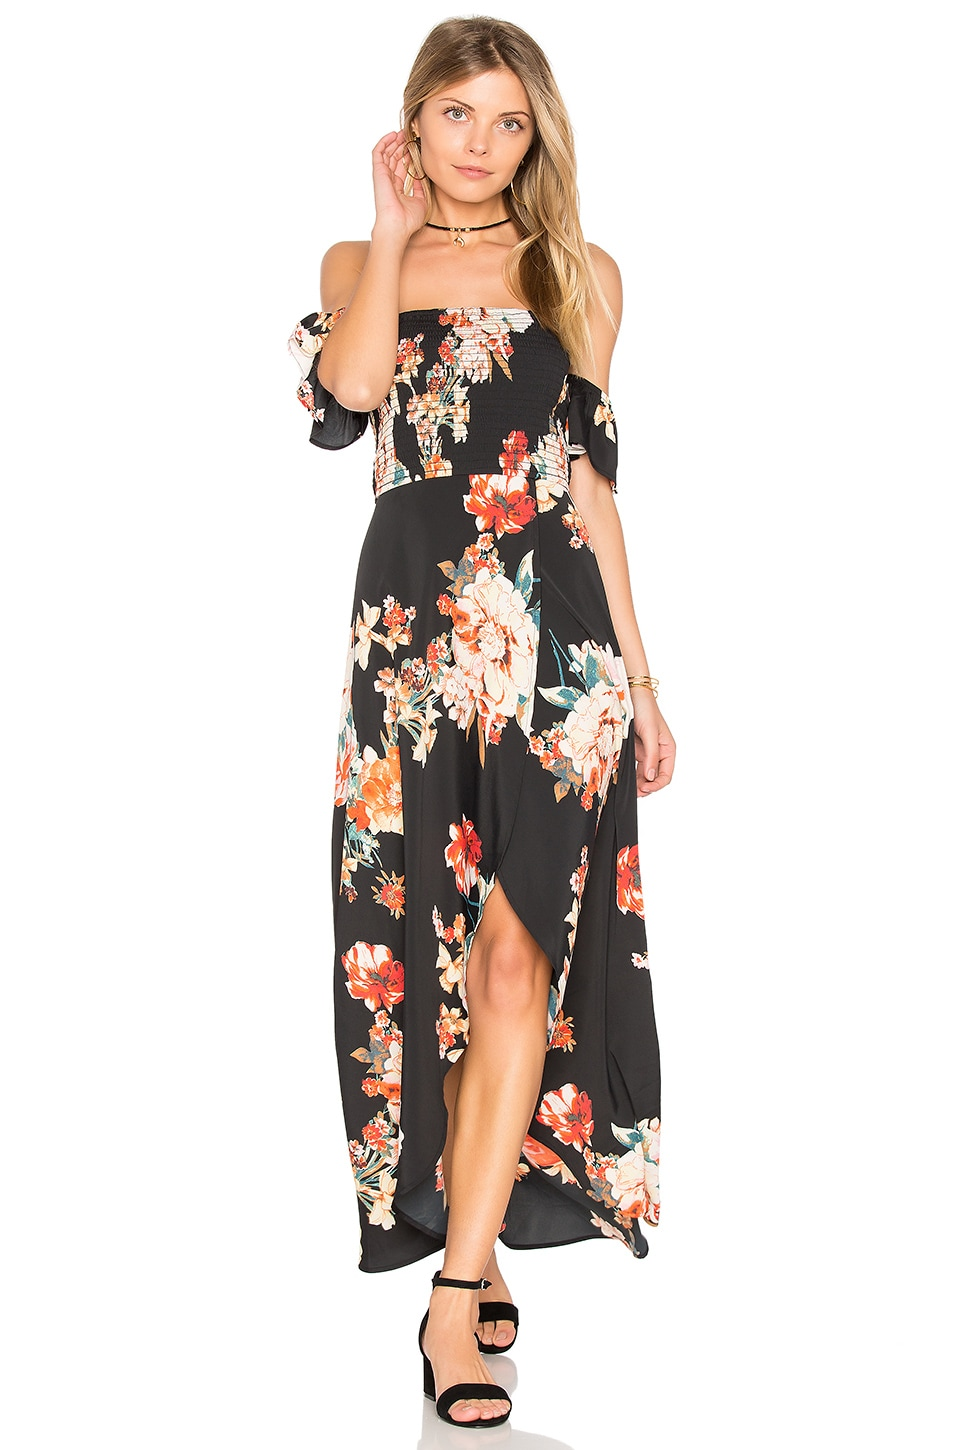 Band of Gypsies Large Floral Maxi Dress in Black & Coral